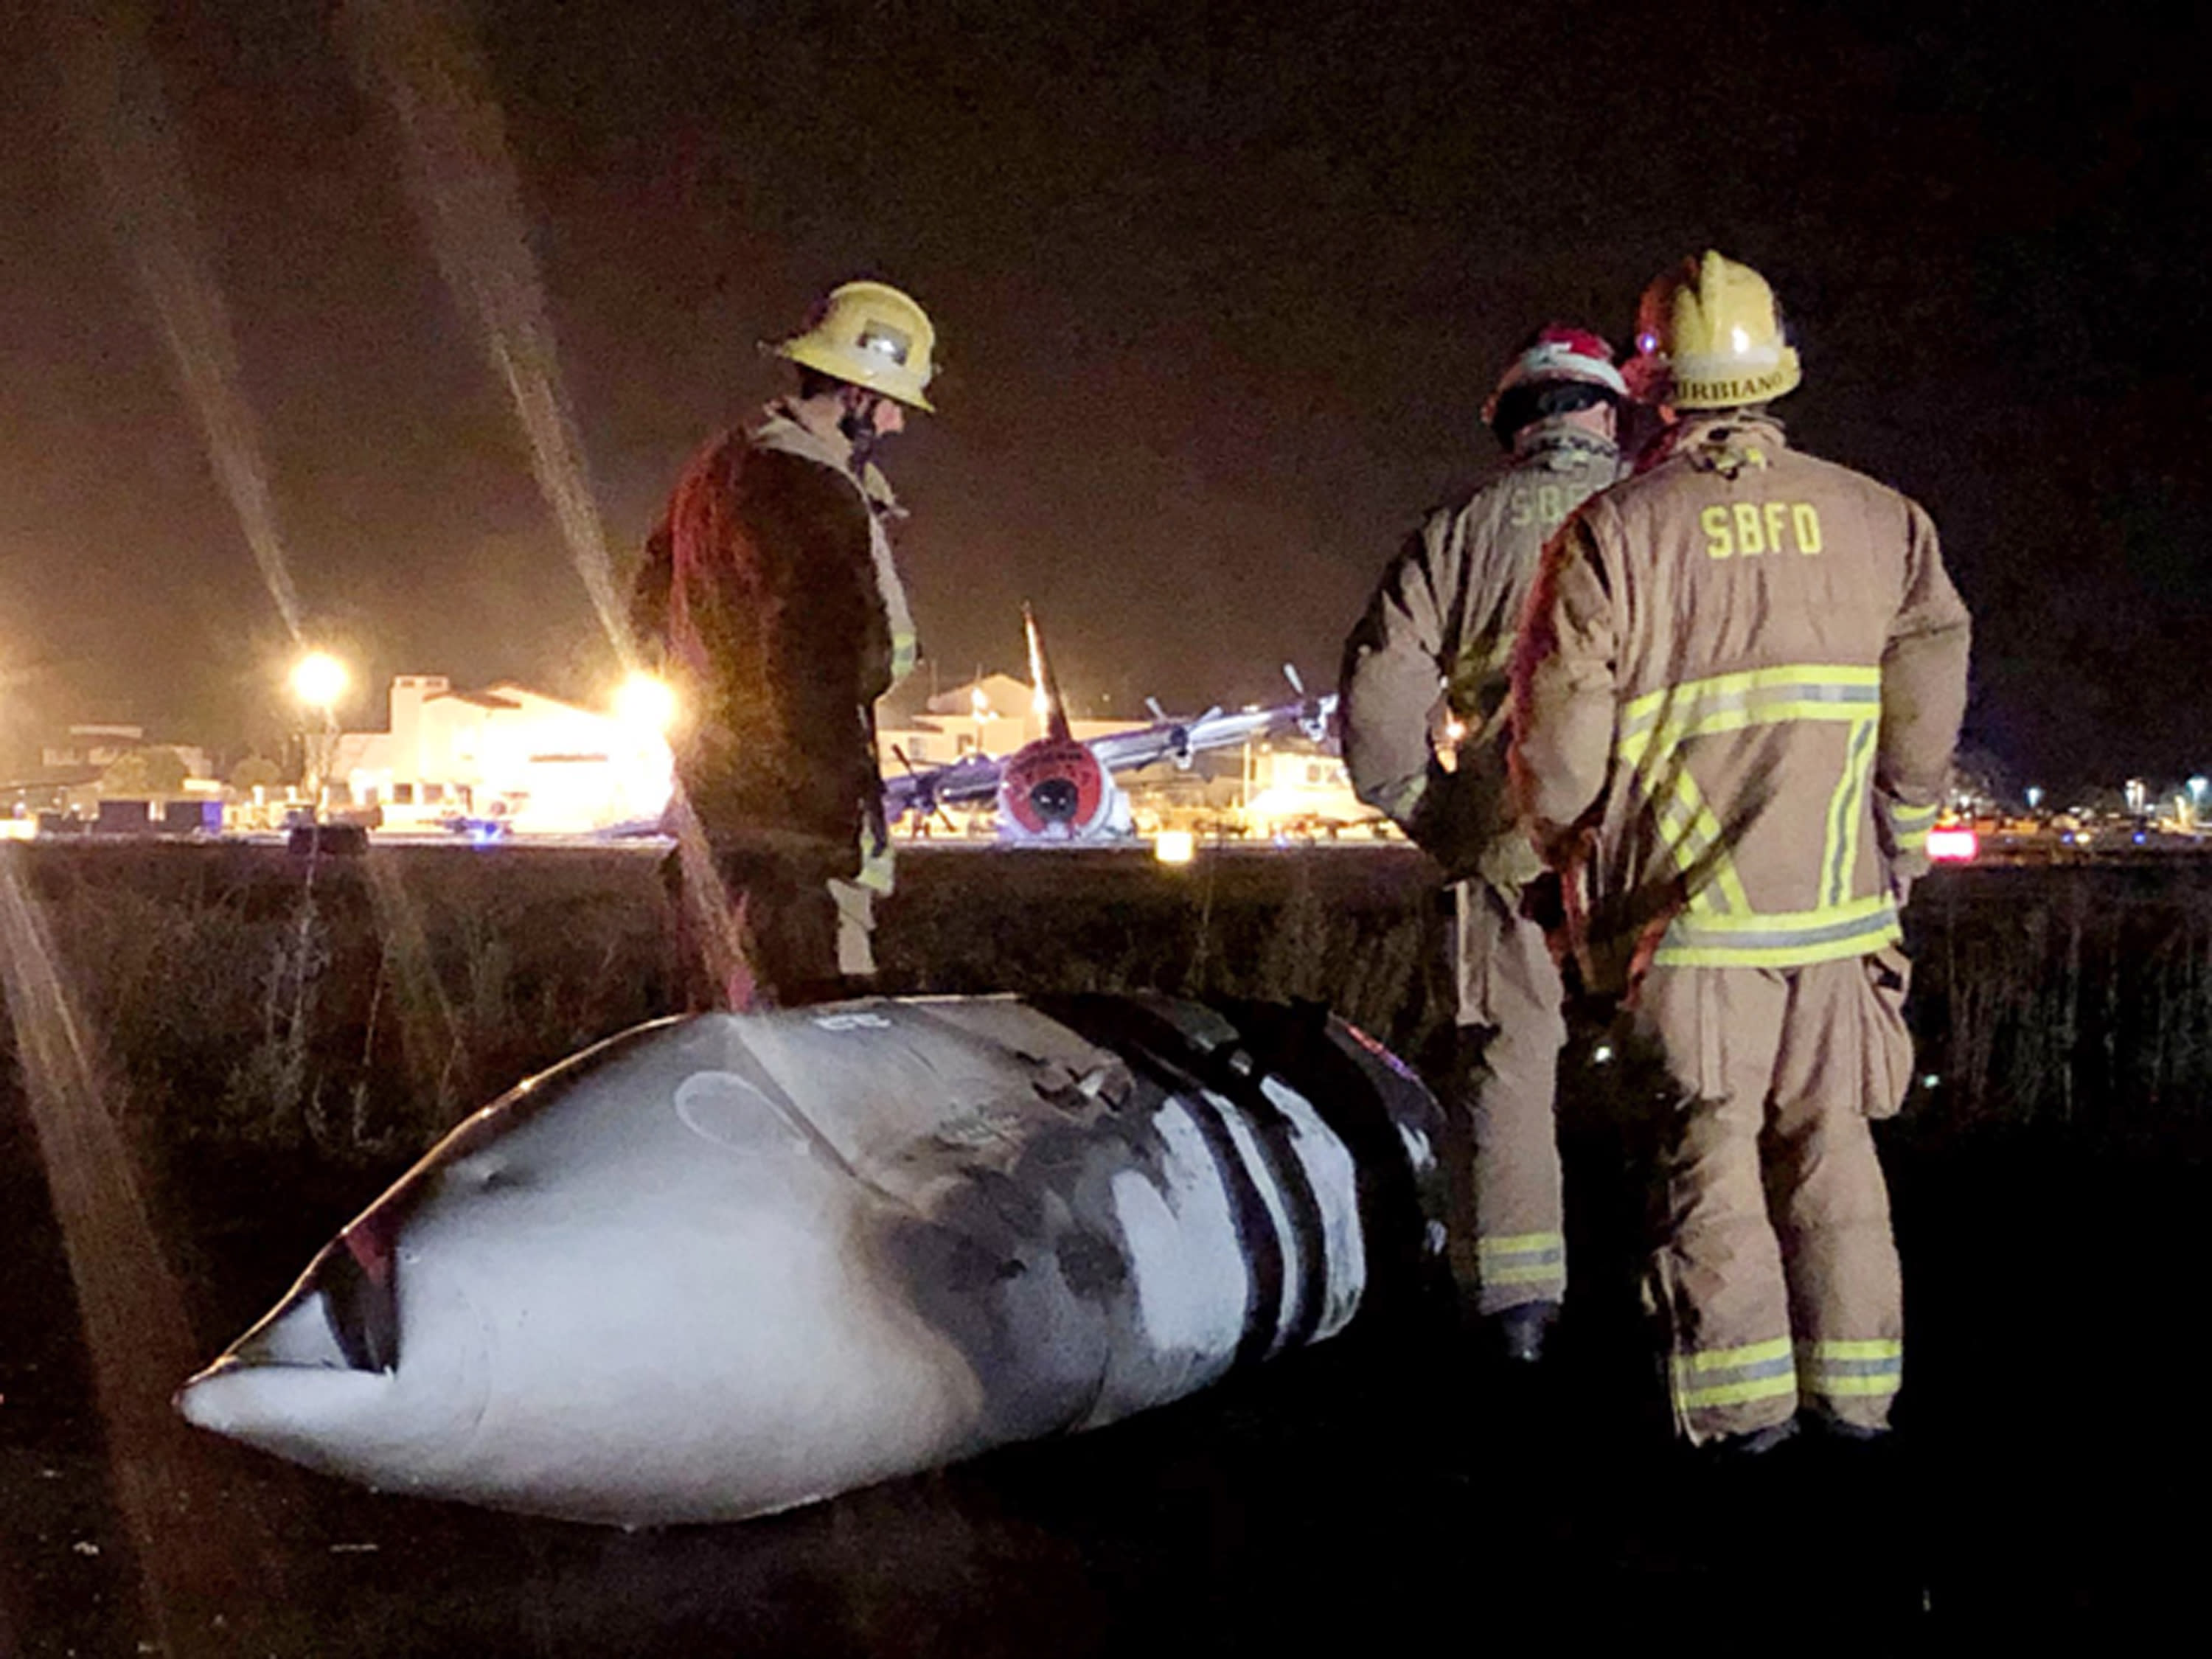 This Sunday, Aug. 25, 2019 photo provided by the Santa Barbara County Fire Department shows the wreckage of a Lockheed C-130 cargo pane after it crashed and burned at the Santa Barbara, Calif., Airport. Authorities say seven people escaped unhurt. The Federal Aviation Administration says the plane experienced hydraulic problems and crash-landed on its belly along a runway. (Mike Eliason/Santa Barbara County Fire Department via AP)